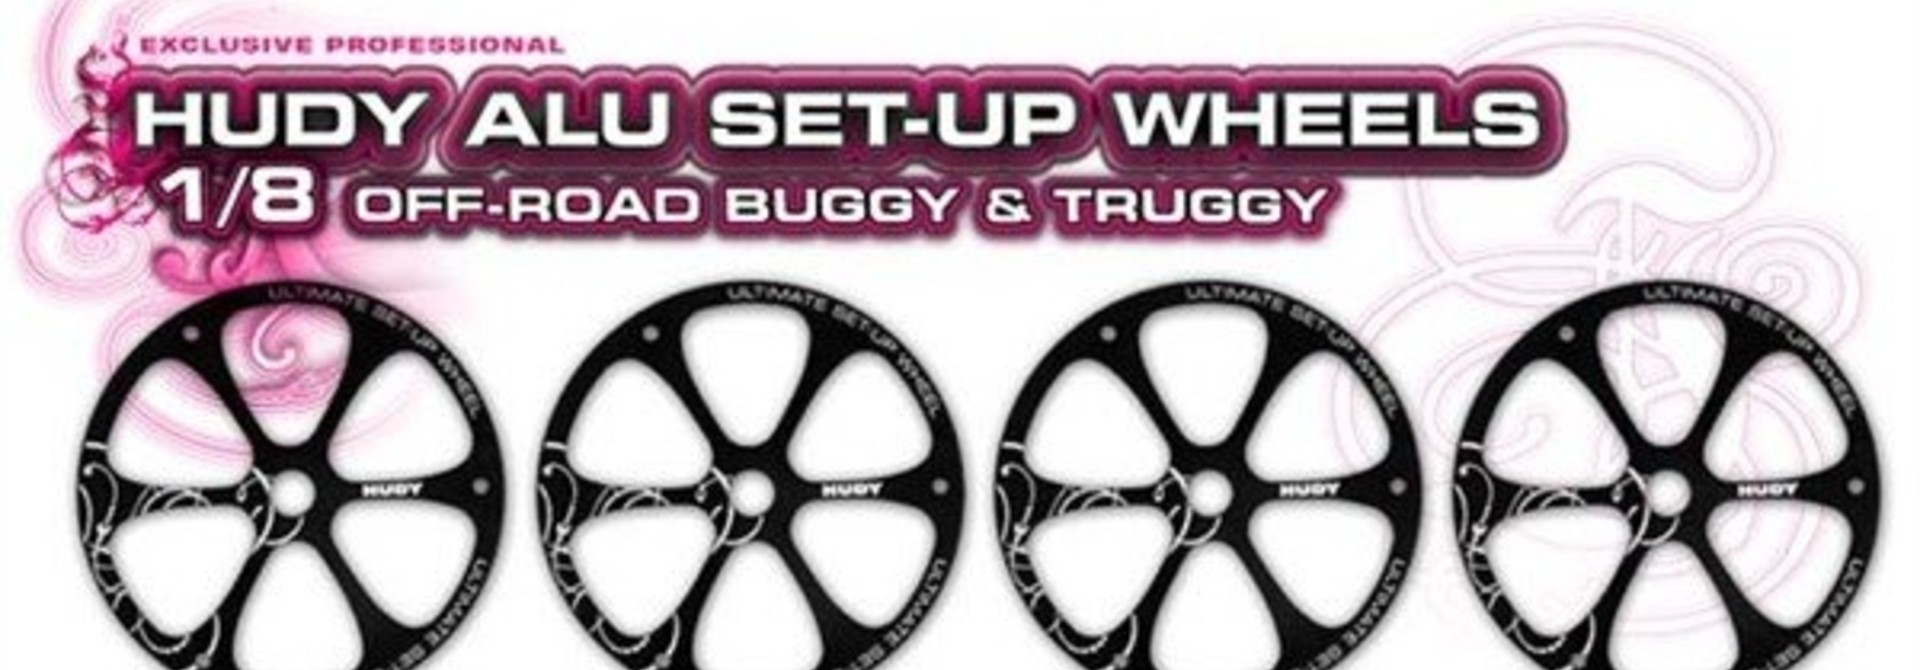 Alu Set-Up Wheel For 1/8 Off-Road (4), H108870